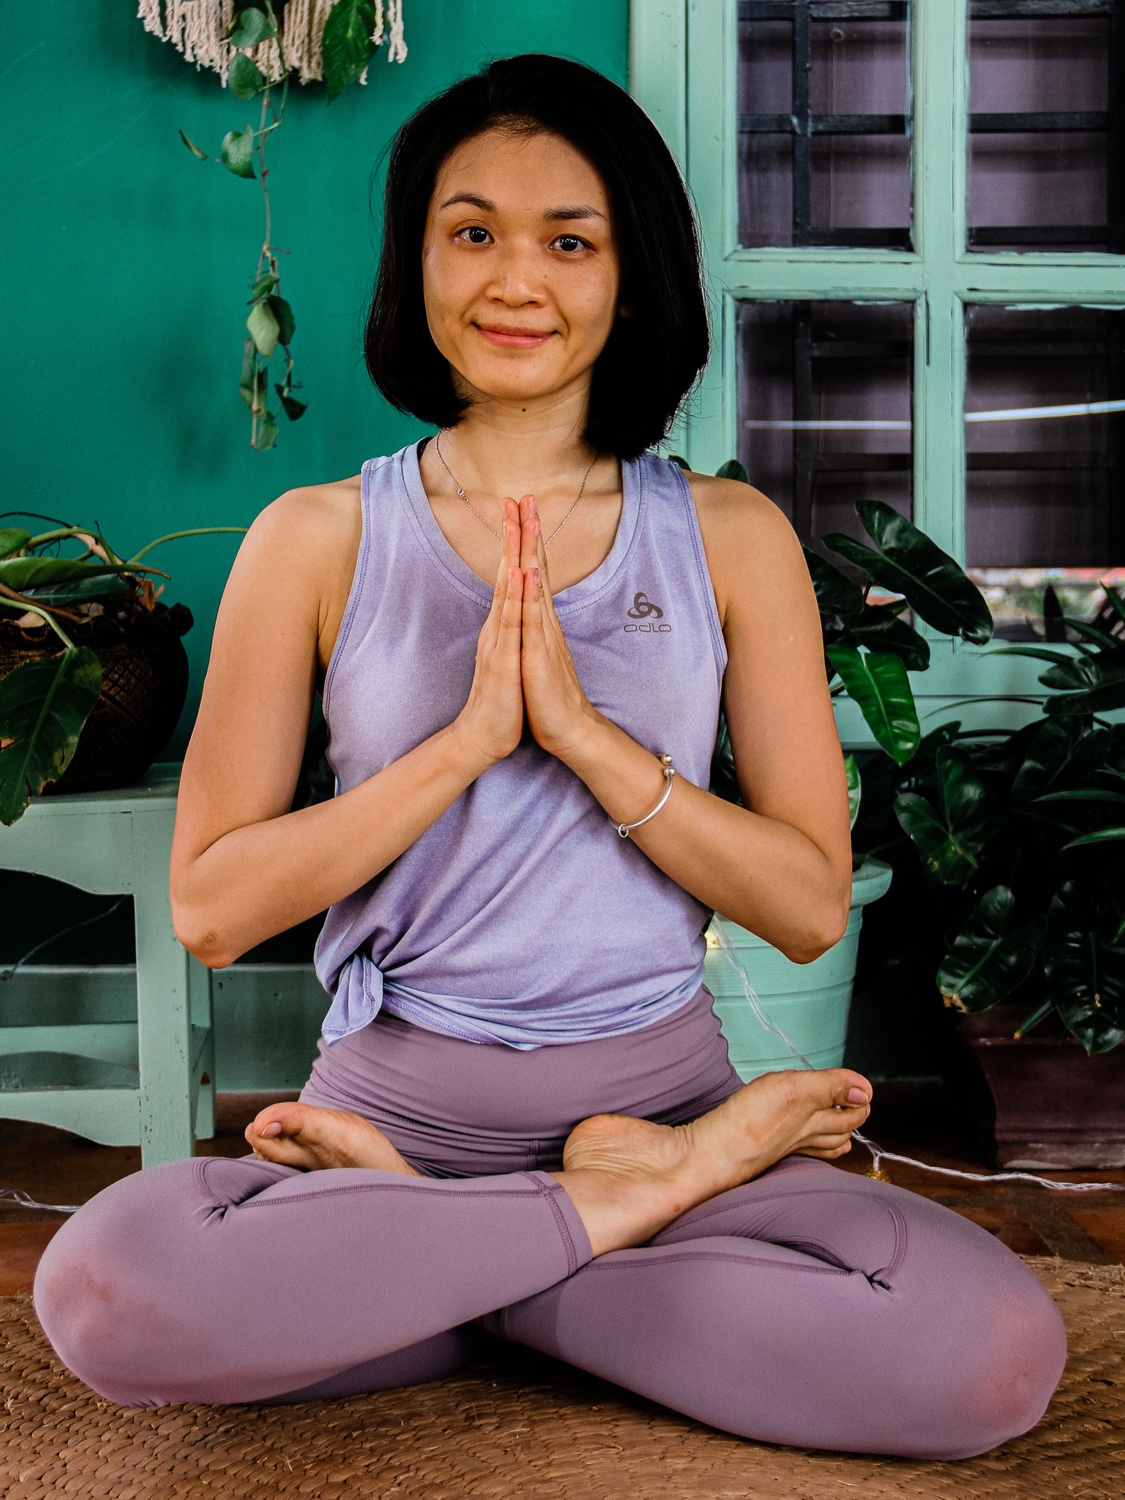 Image of woman wearing purple singlet and purple yoga pants with her hands in prayer position and her legs crossed